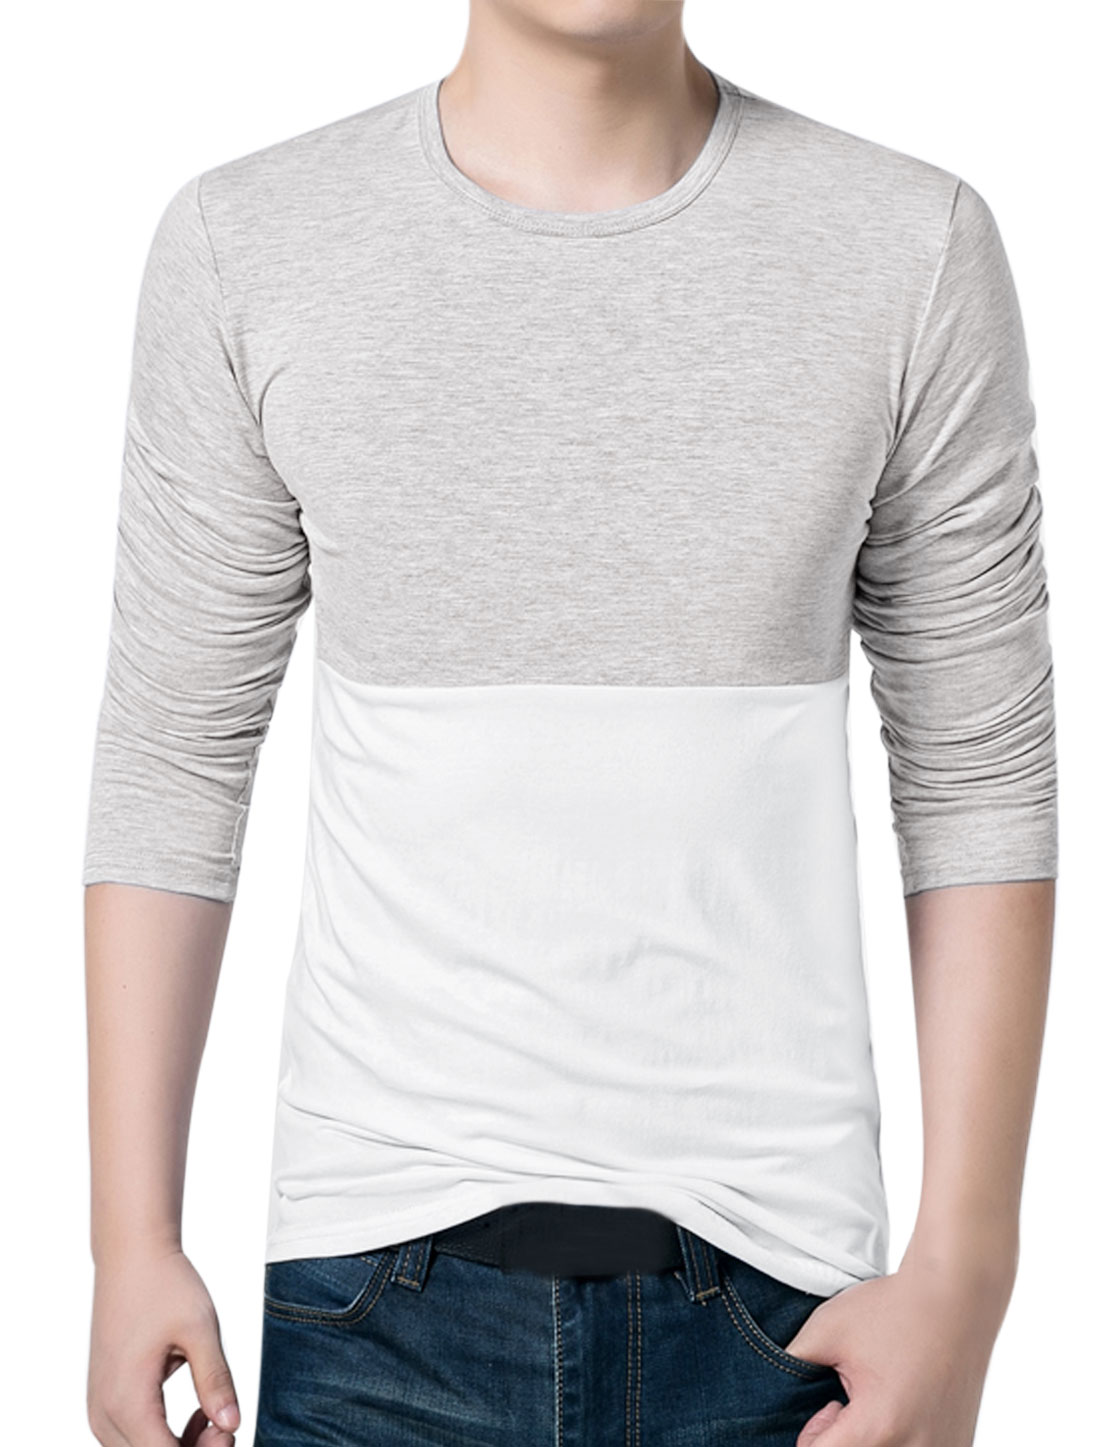 Men Crew Neck Long Sleeves Color Block Slim Fit T-Shirt Gray White S